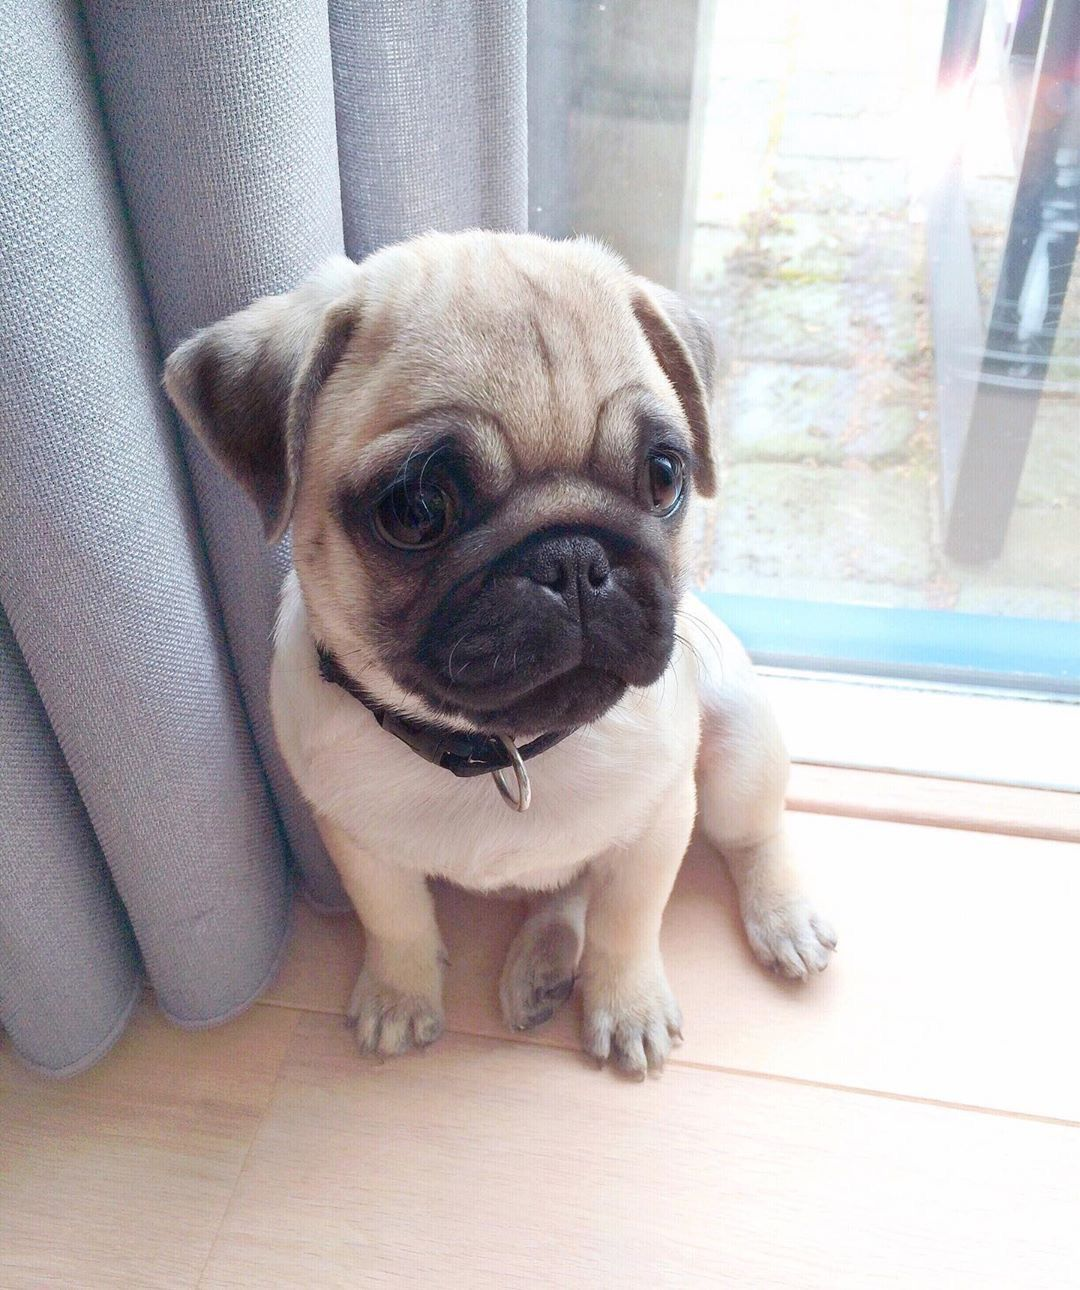 Pin By Iain Brisbin On Cute Animals Pug Puppies Baby Pugs Dogs